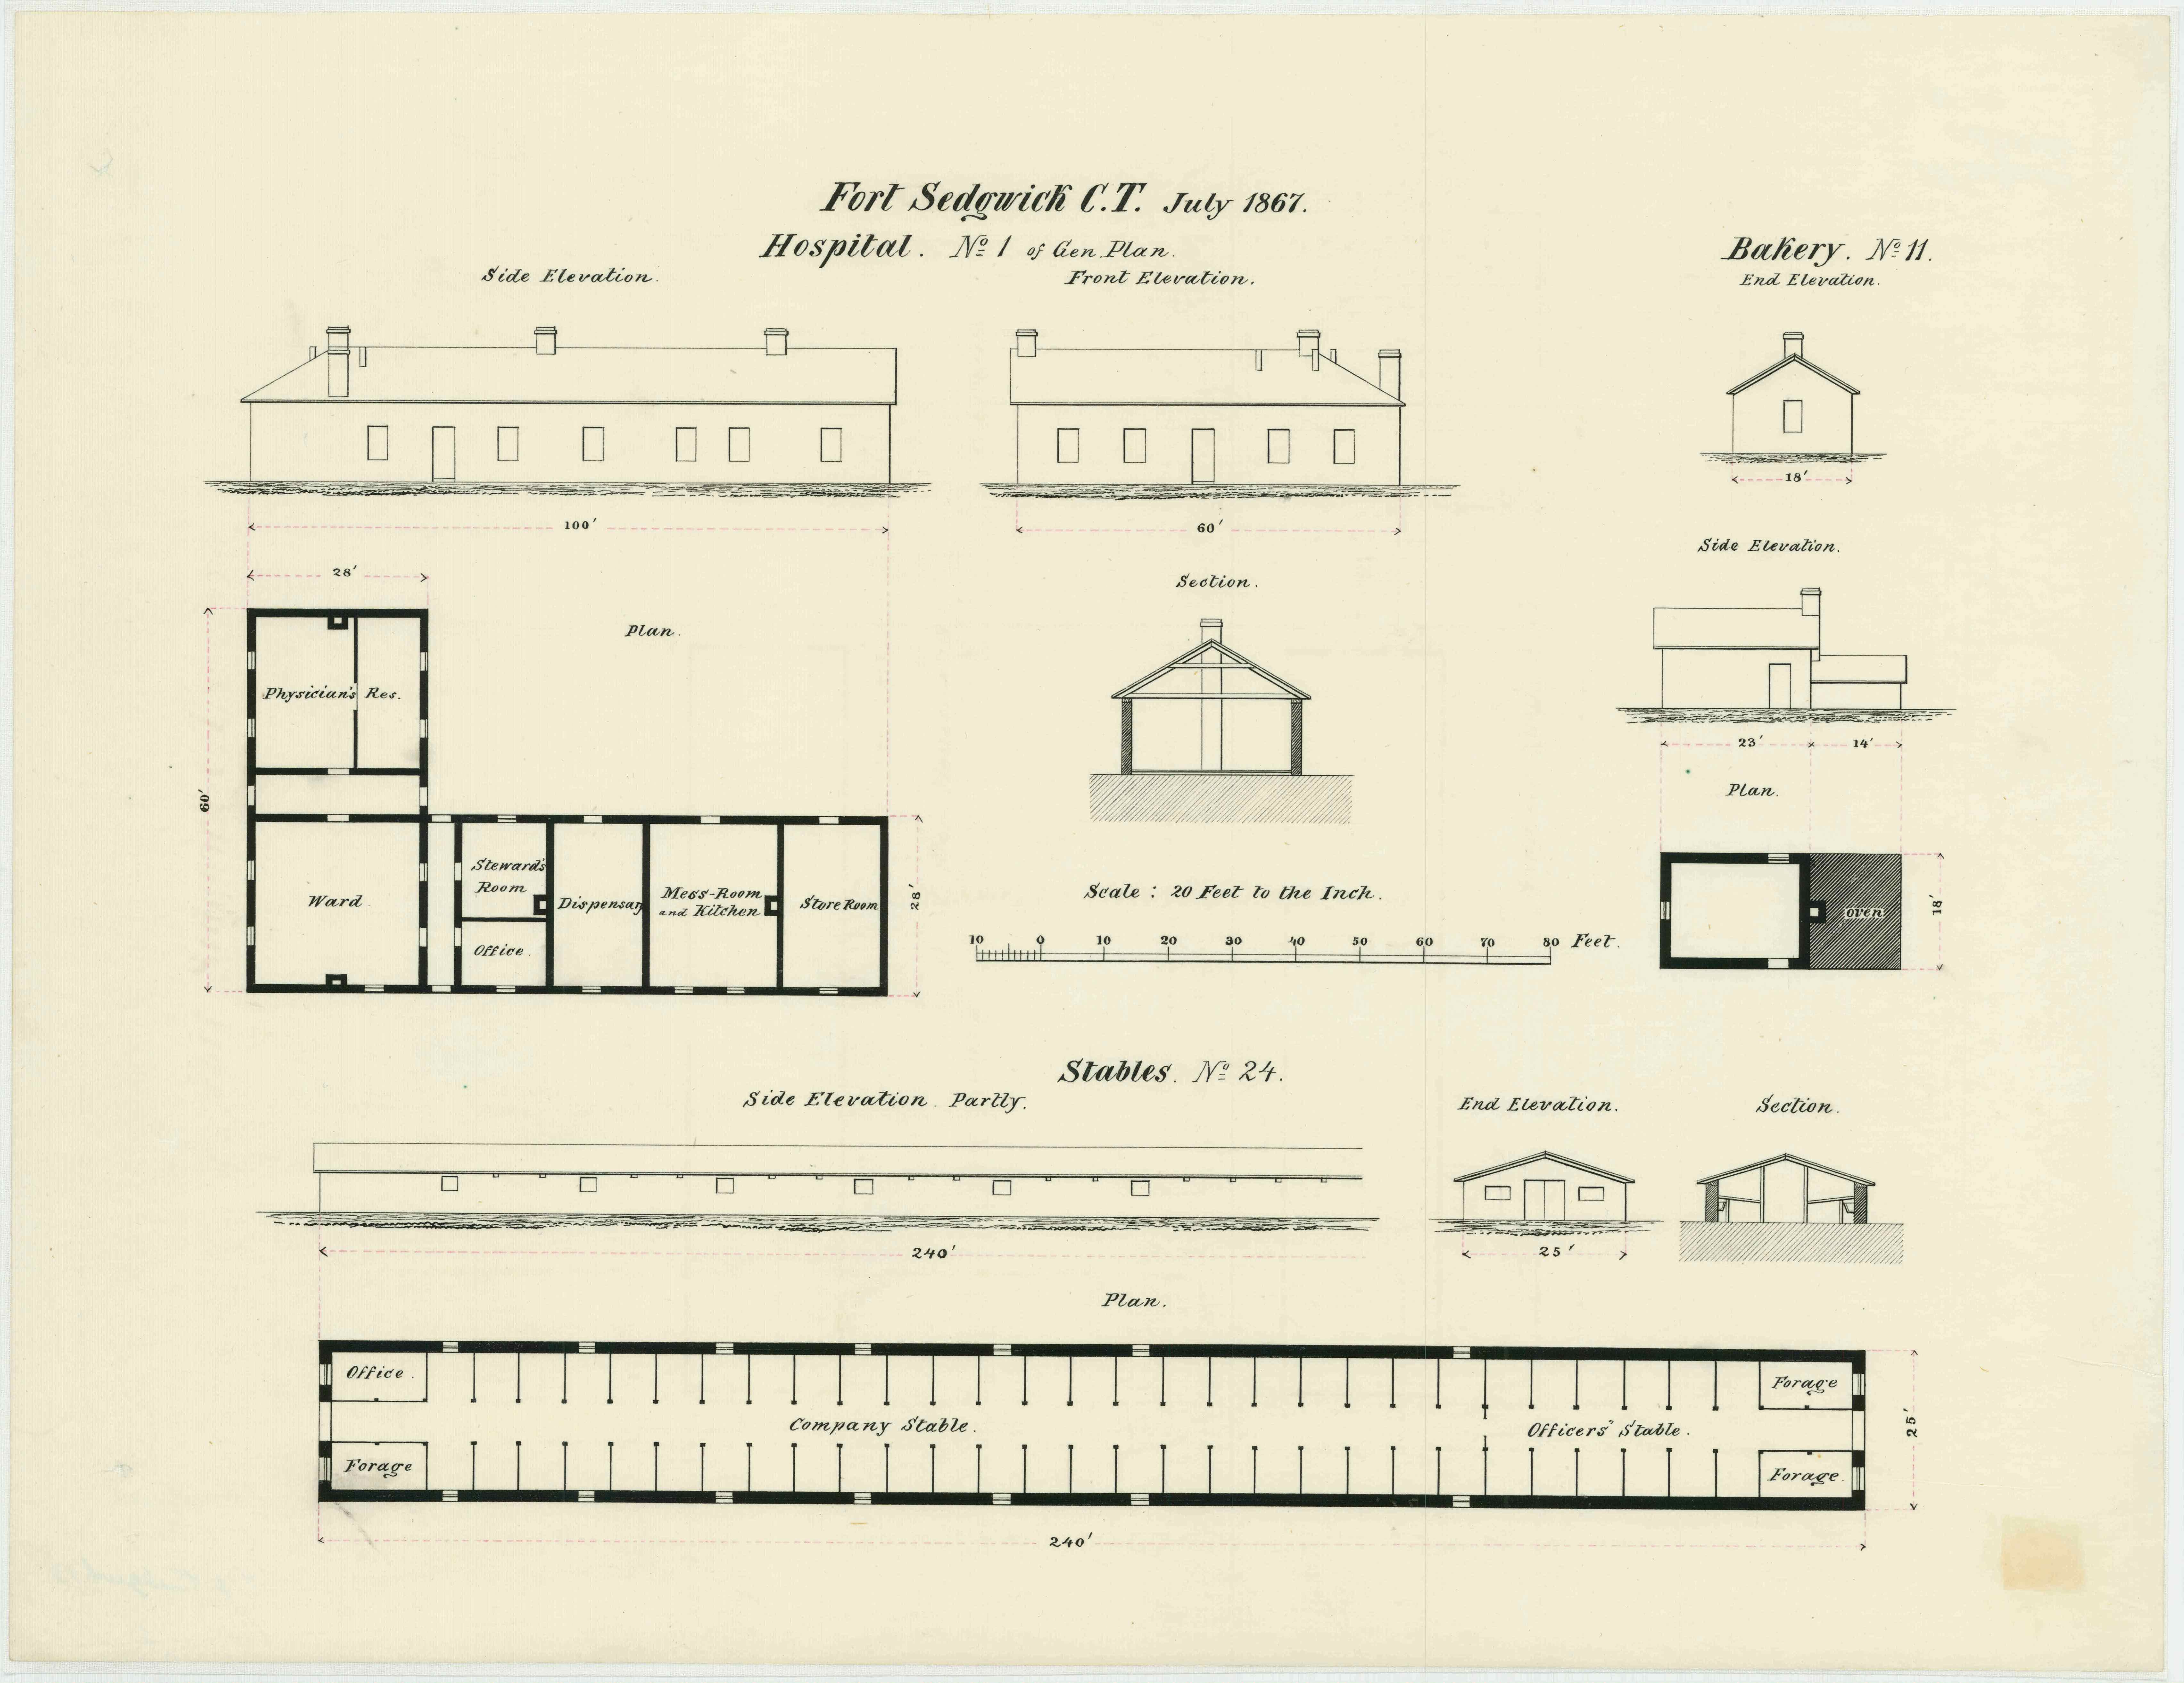 July 1867 military architectural plans for the bakery, stable, and hospital at Fort Sedgwick (Courtesy of the Map Division, Archives II, NARA)